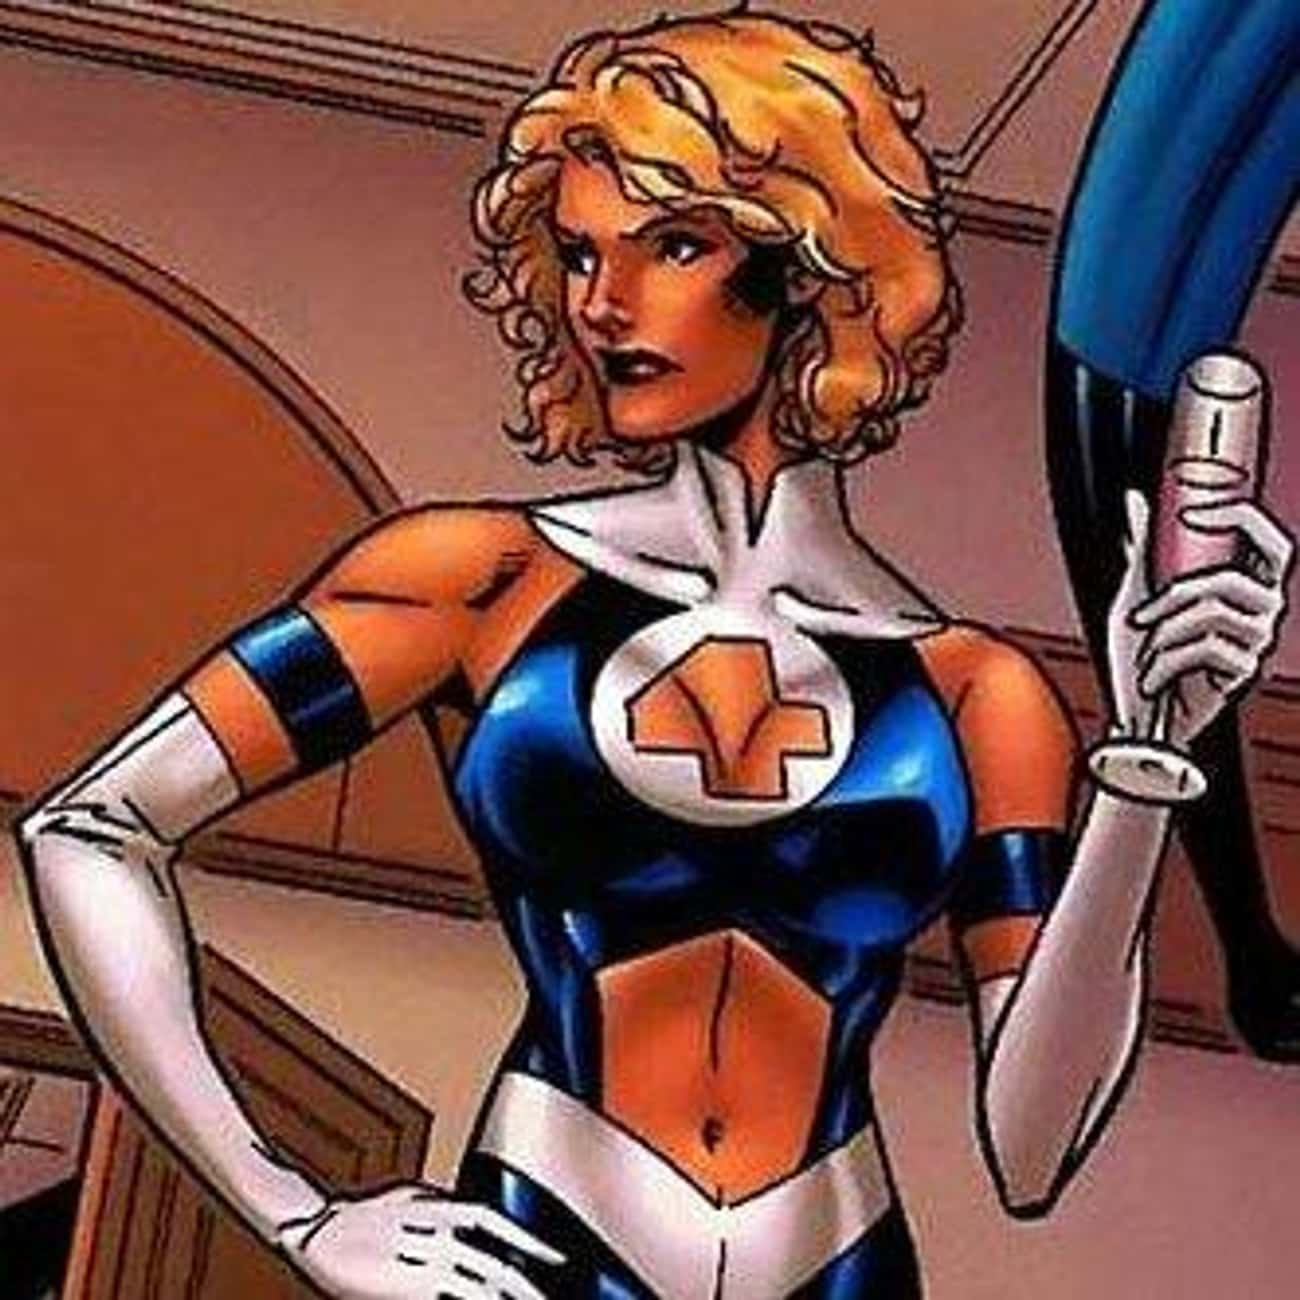 Cutout Wearing Invisible Woman is listed (or ranked) 3 on the list The 10 Lamest Superhero Costume Designs Ever